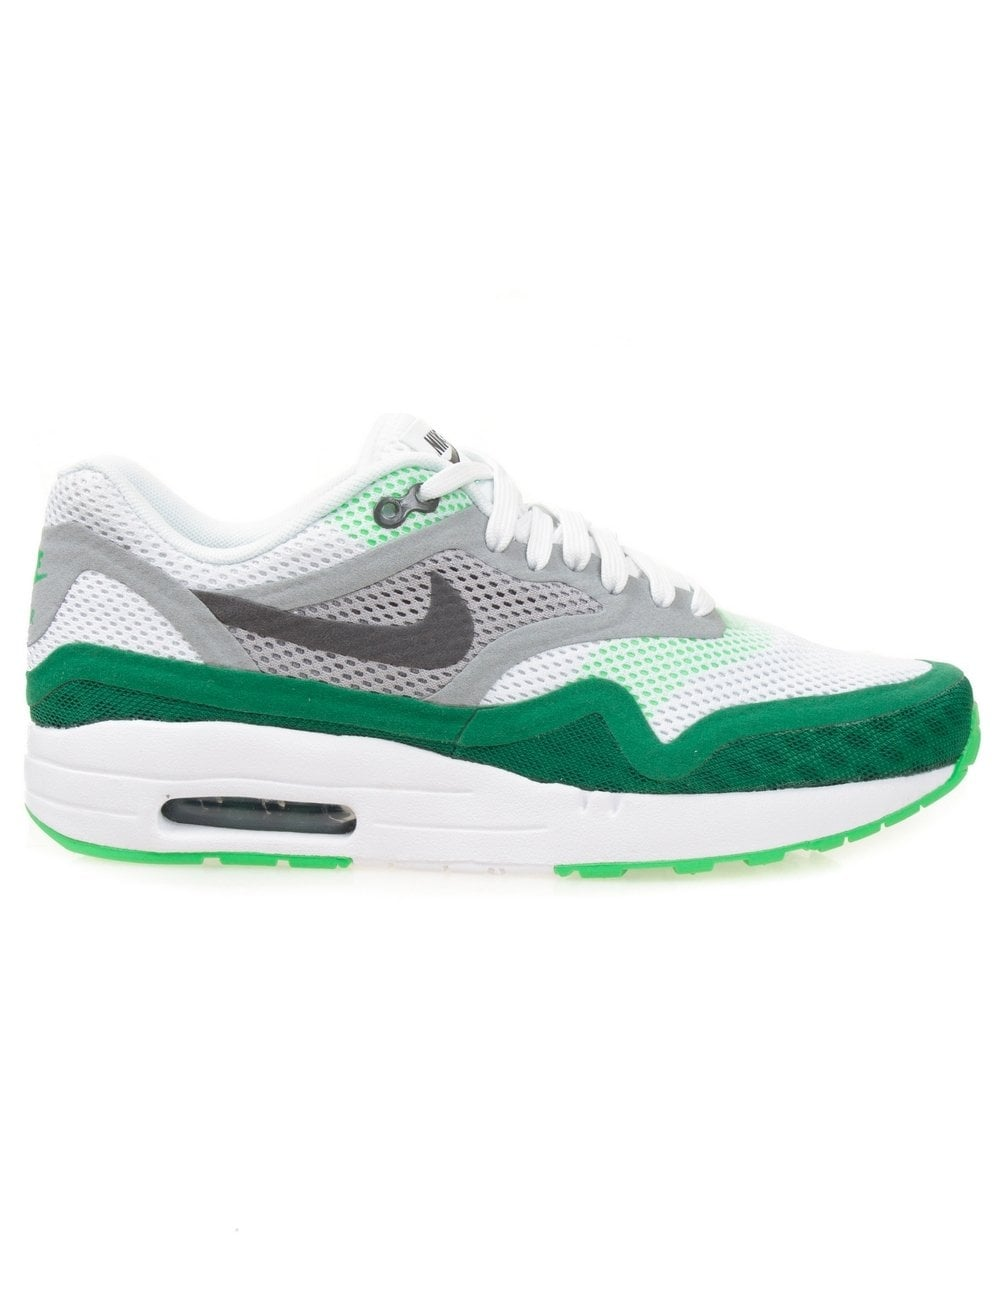 Buddha Green BlancPine Fat Max Breathe 1 from Footwear Air Nike 4wzqHPf